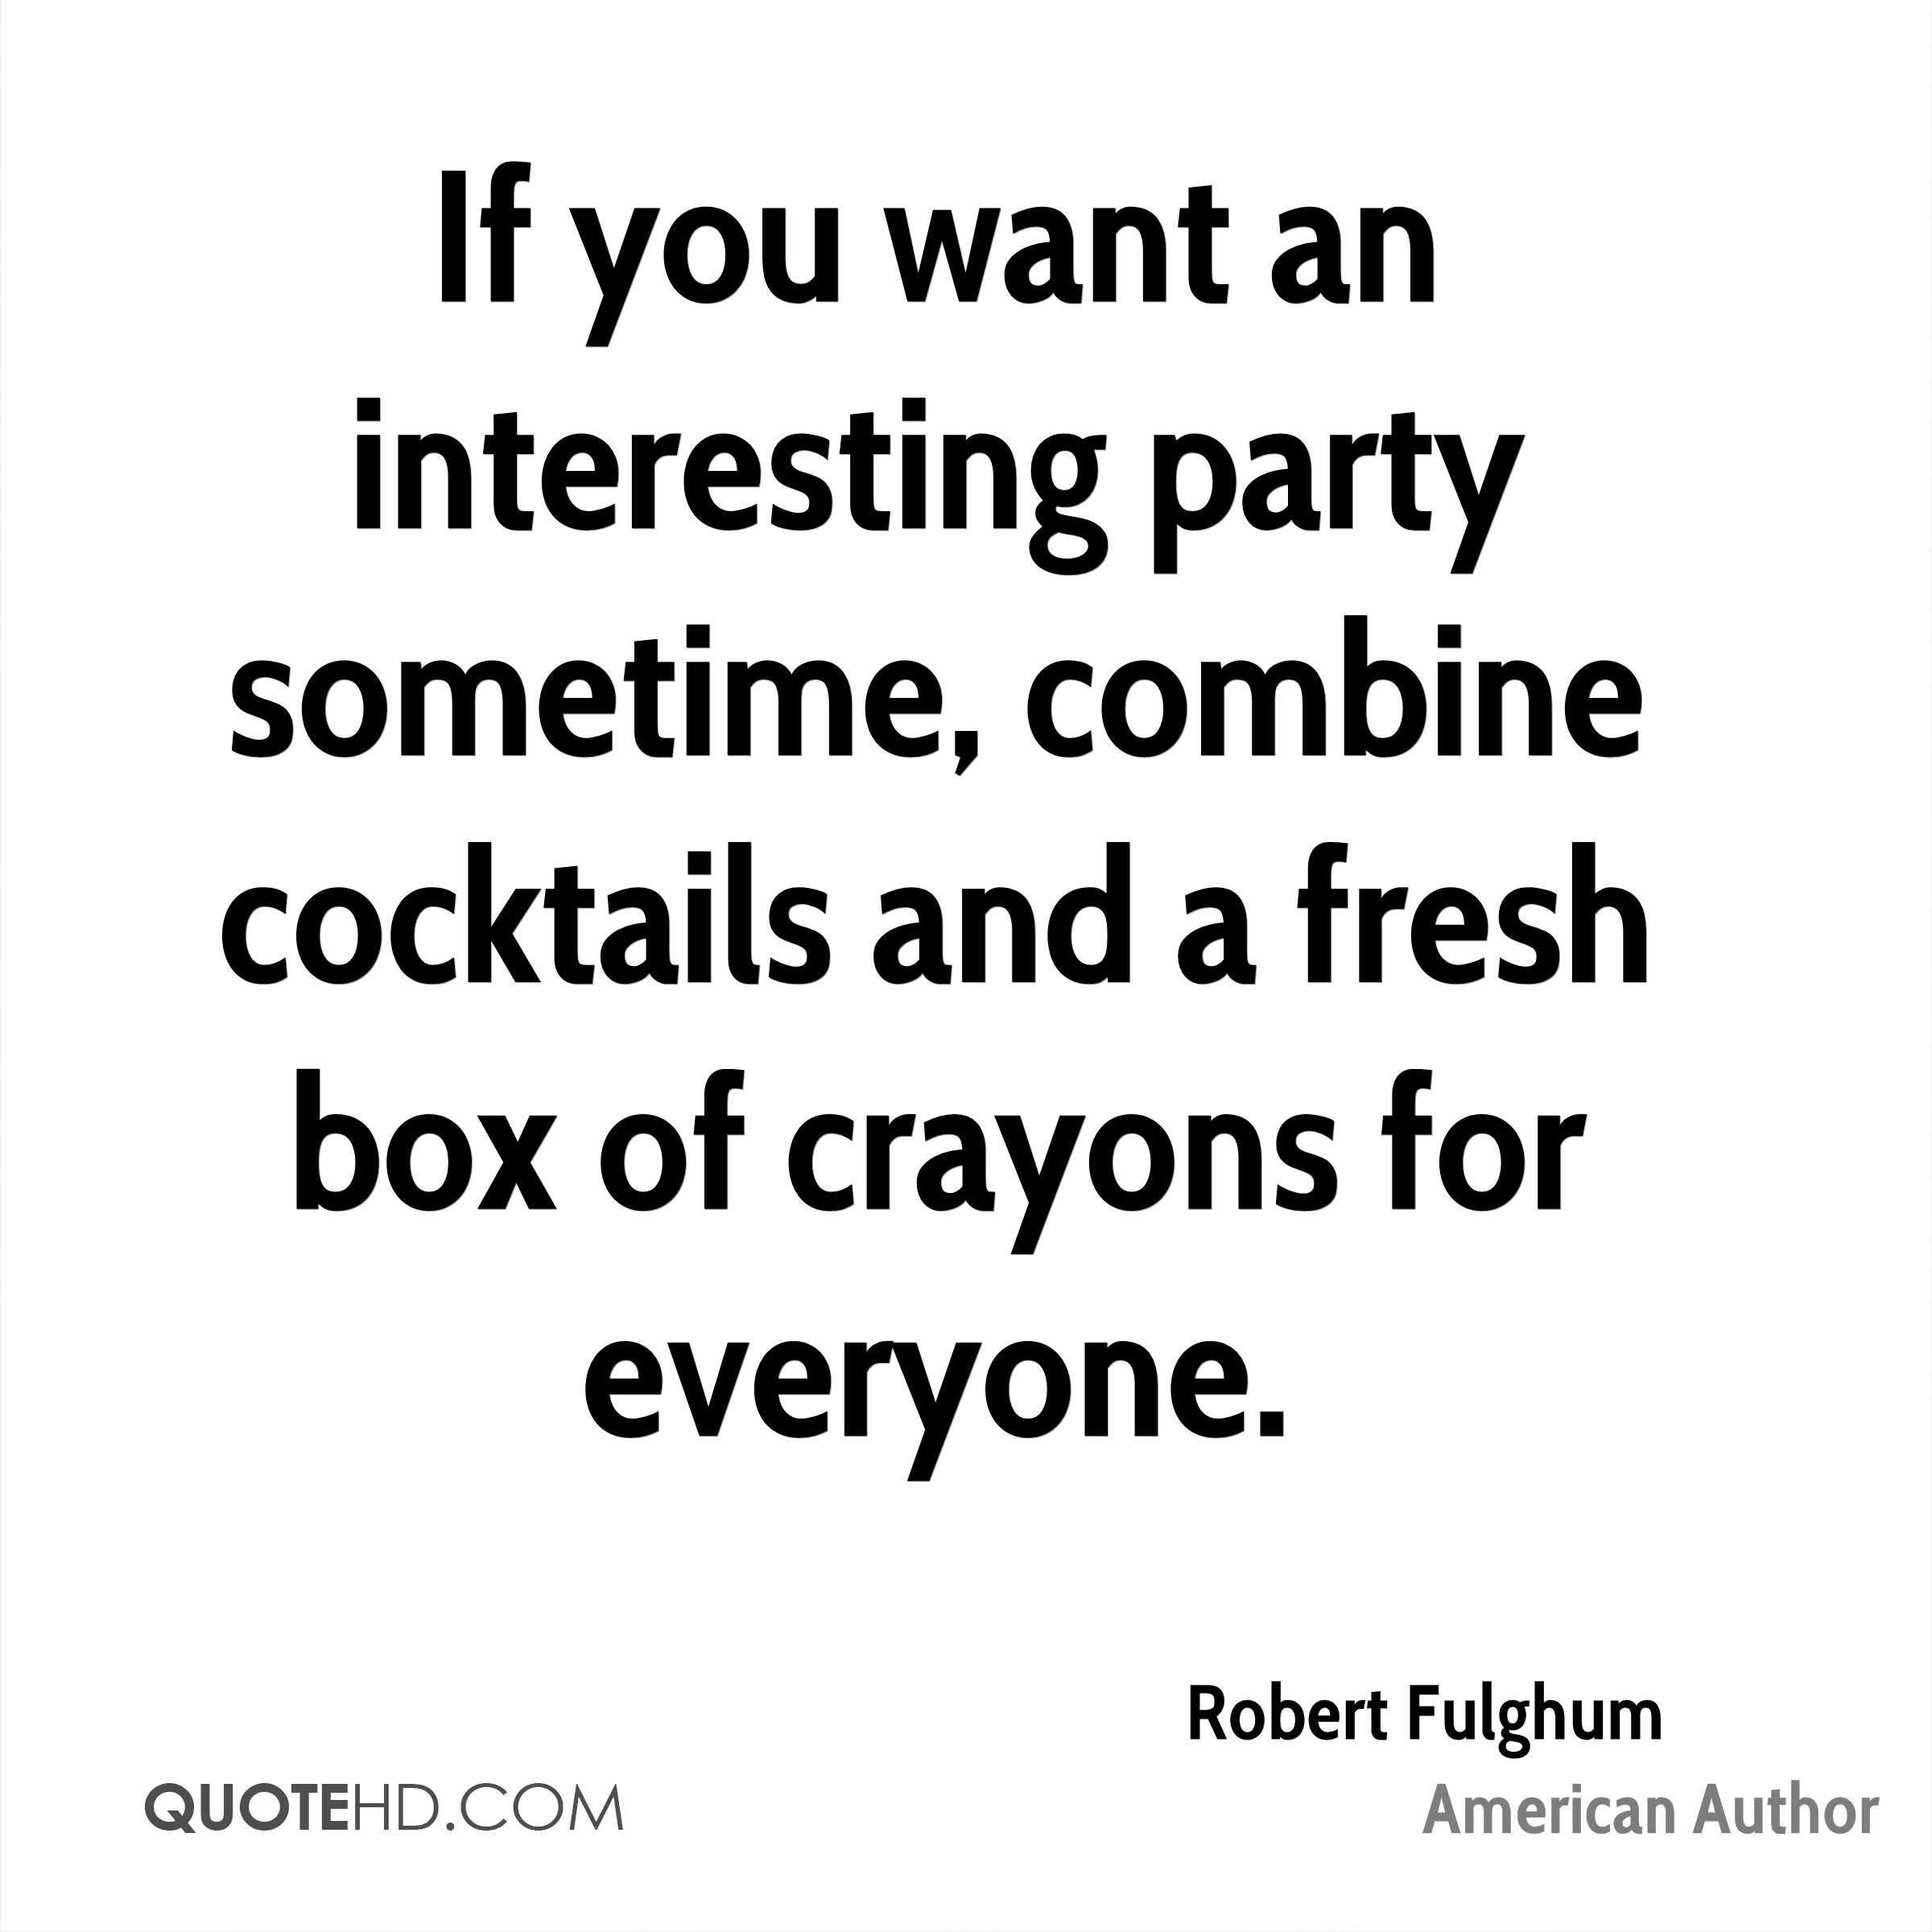 Robert Fulghum New Year\'s Quotes | QuoteHD